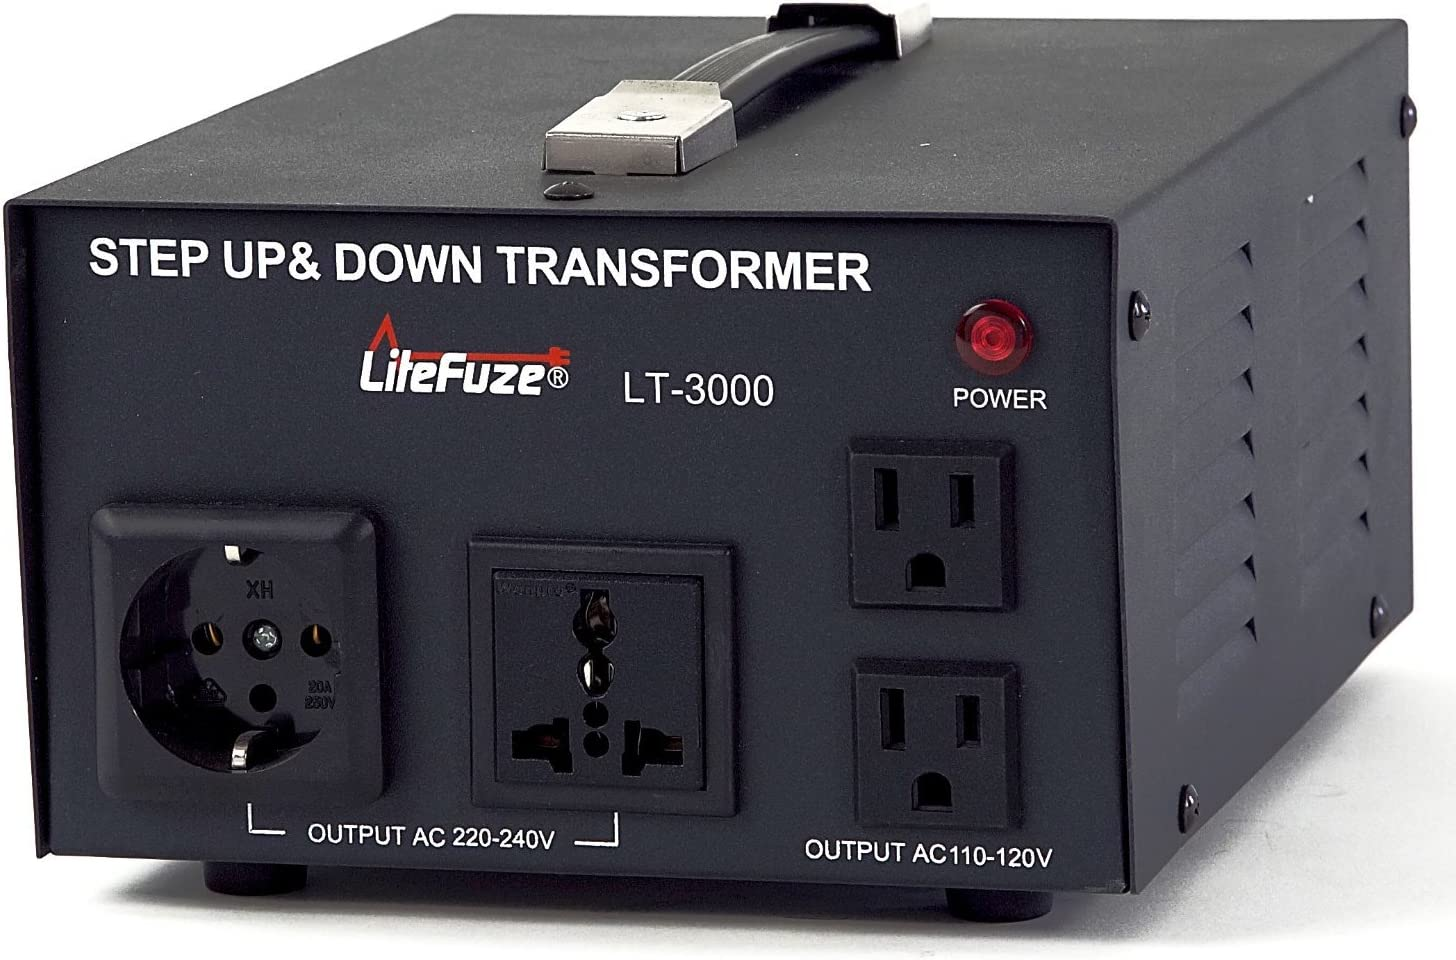 3000 Watt Voltage Converter Transformer by LiteFuze - Step Up/Down - 110V/220V - Circuit Breaker Protection -Heavy Duty/ - Convertingbox Technology - LT Series - Perfect for Coffee Maker